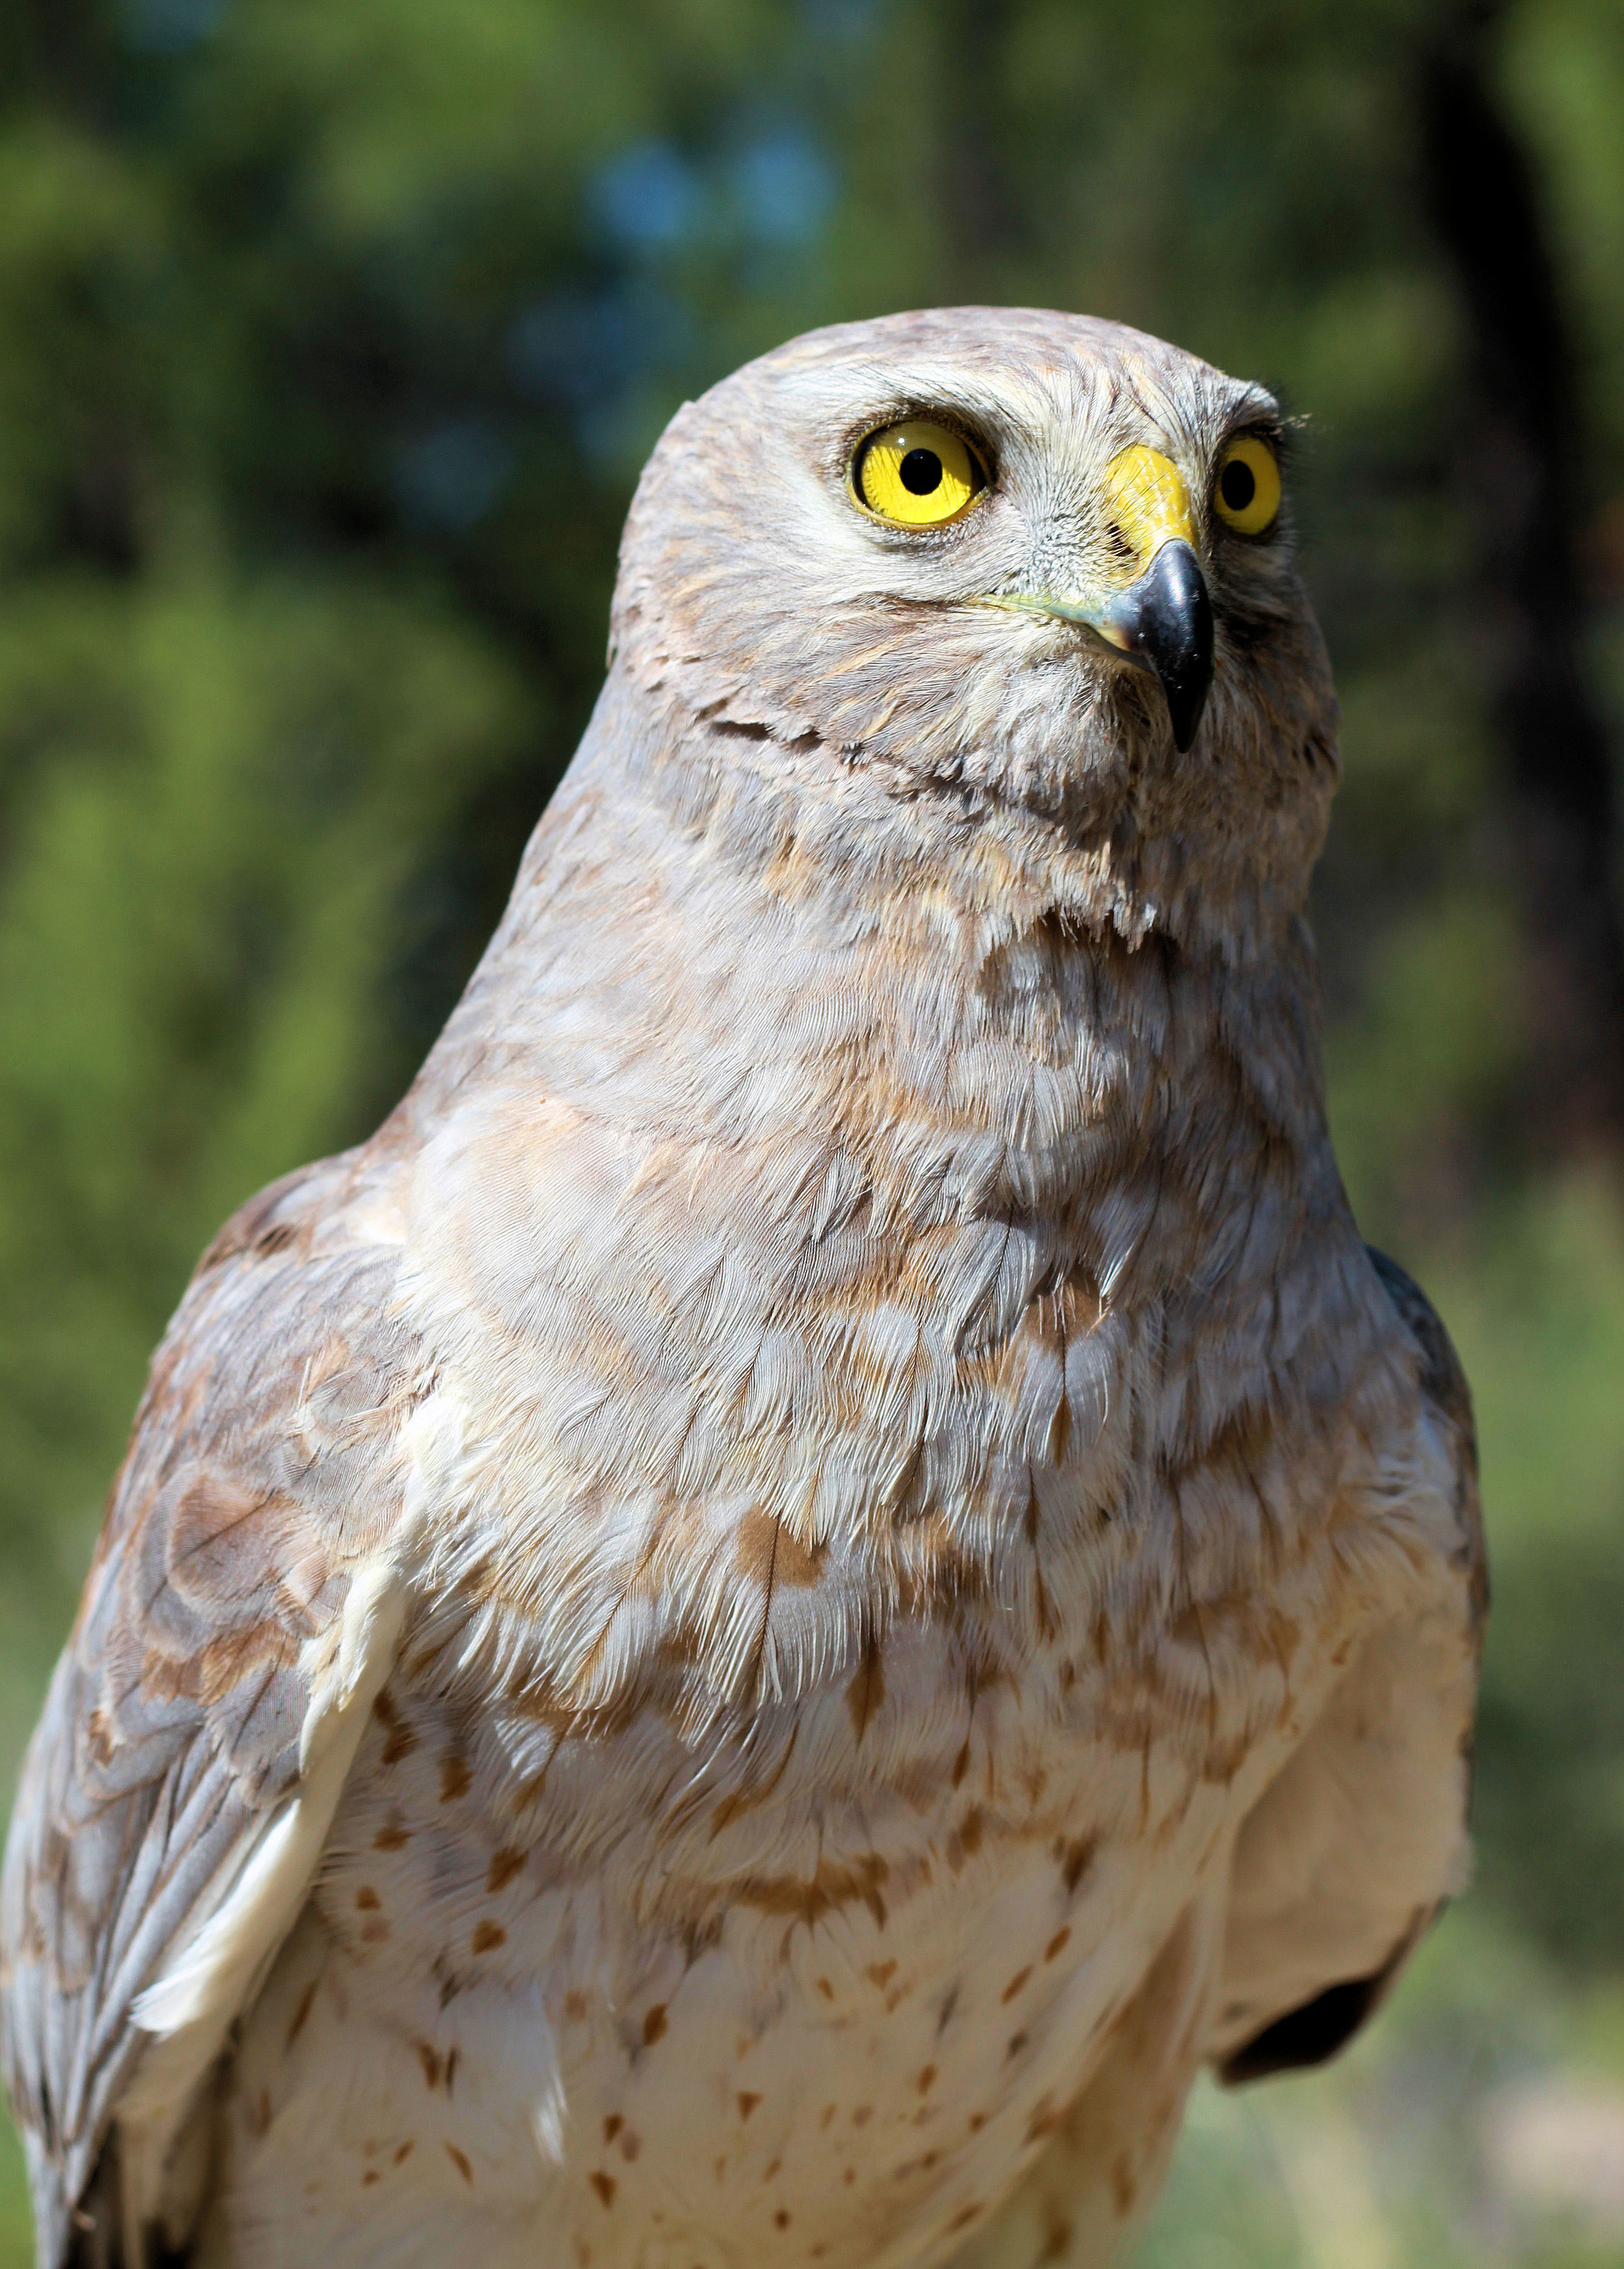 Male Northern Harrier - By Jon Nelson from Bend, Oregon, USA (Male Northern Harrier) [ CC BY 2.0 ], via  Wikimedia Commons